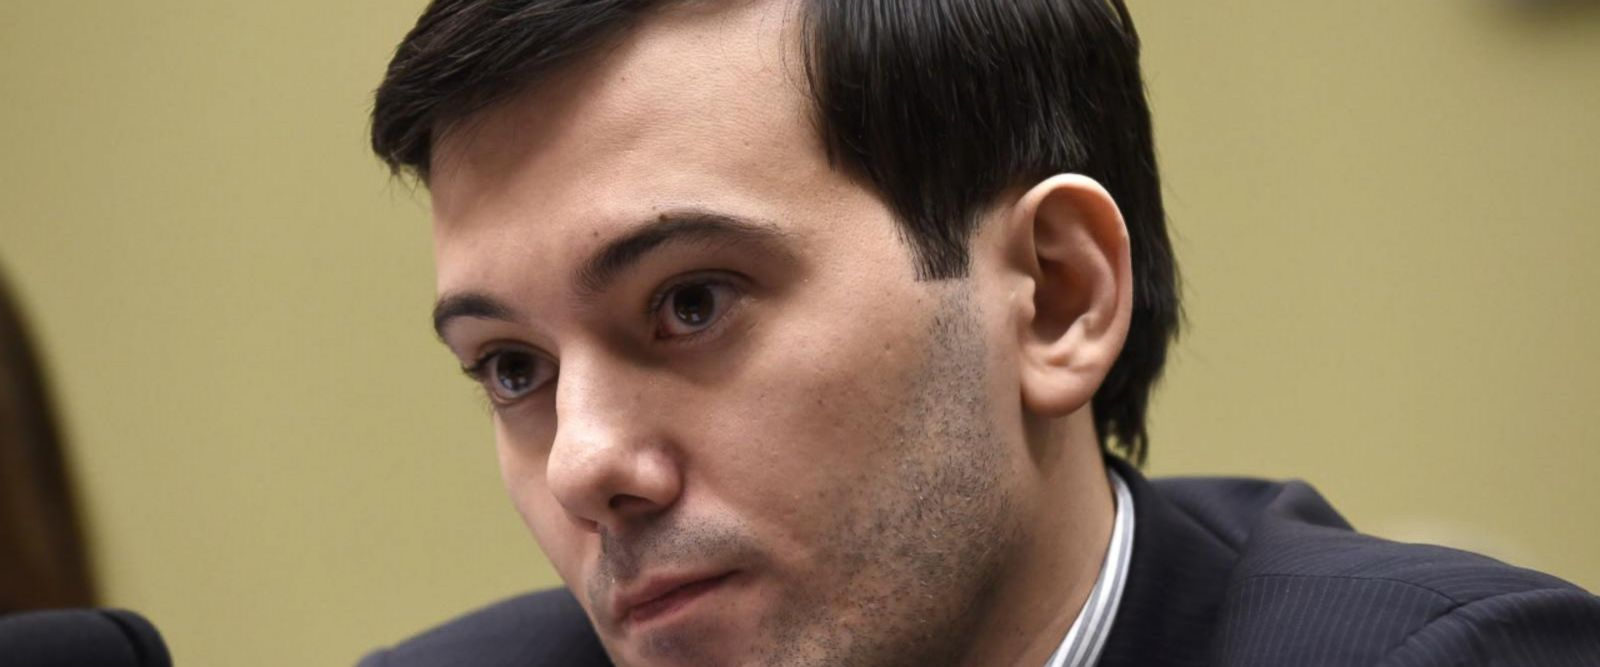 VIDEO: 'Pharma bro' jury selection enters 3rd day